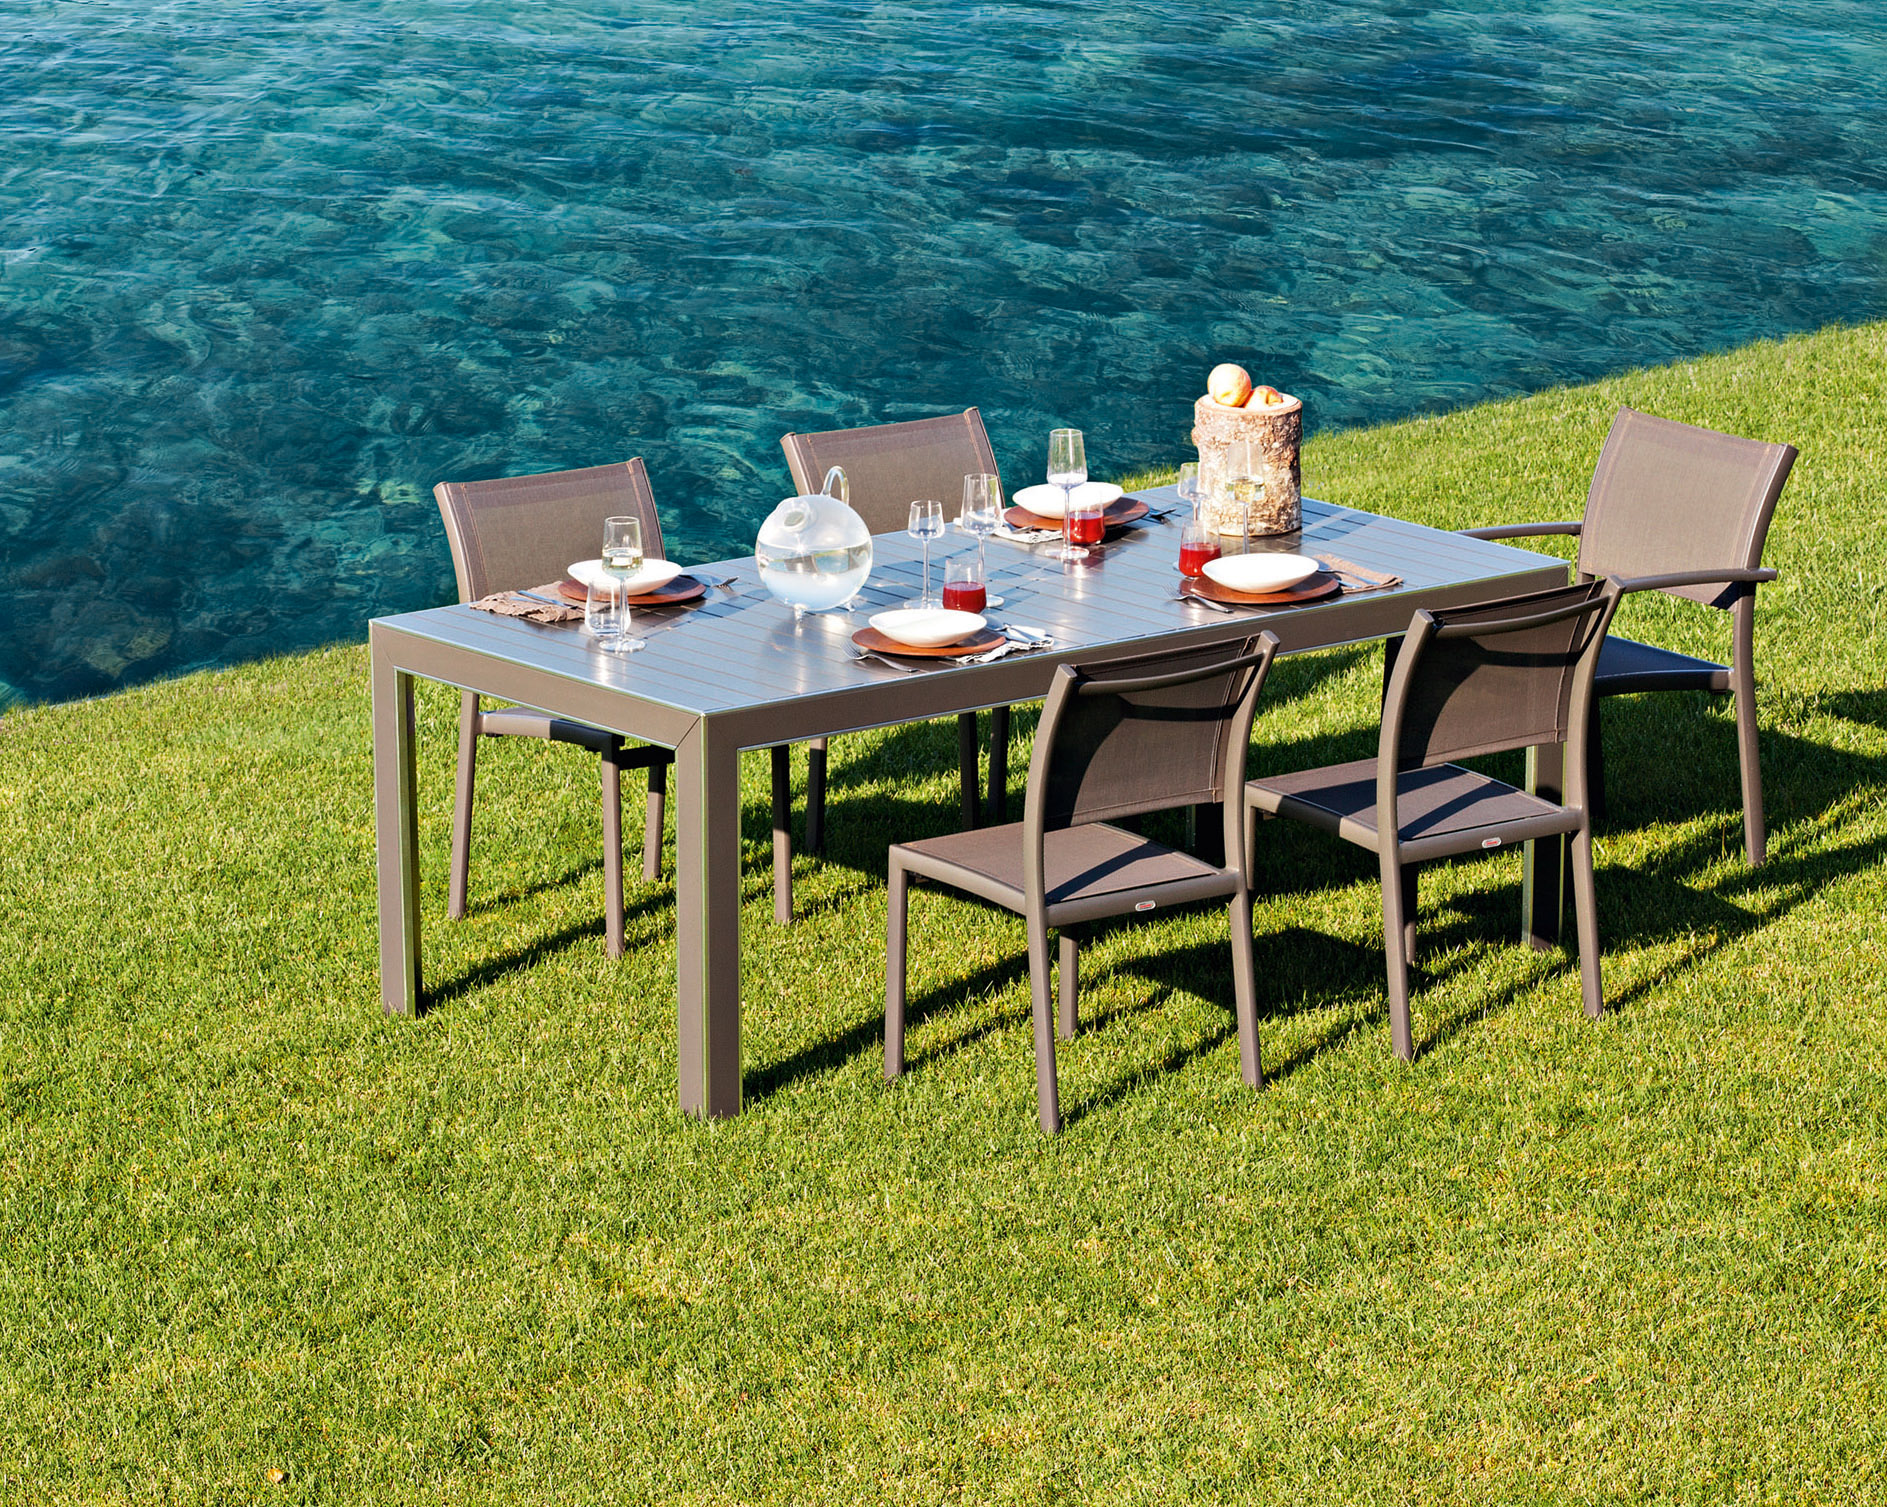 Chair Victor 2901t in addition Mini Pools For Small Backyards additionally Backyard Bliss furthermore Vw Verdiers Concept Stylish Solar Powered Eco C er besides 150758. on summer outdoor furniture classic homes